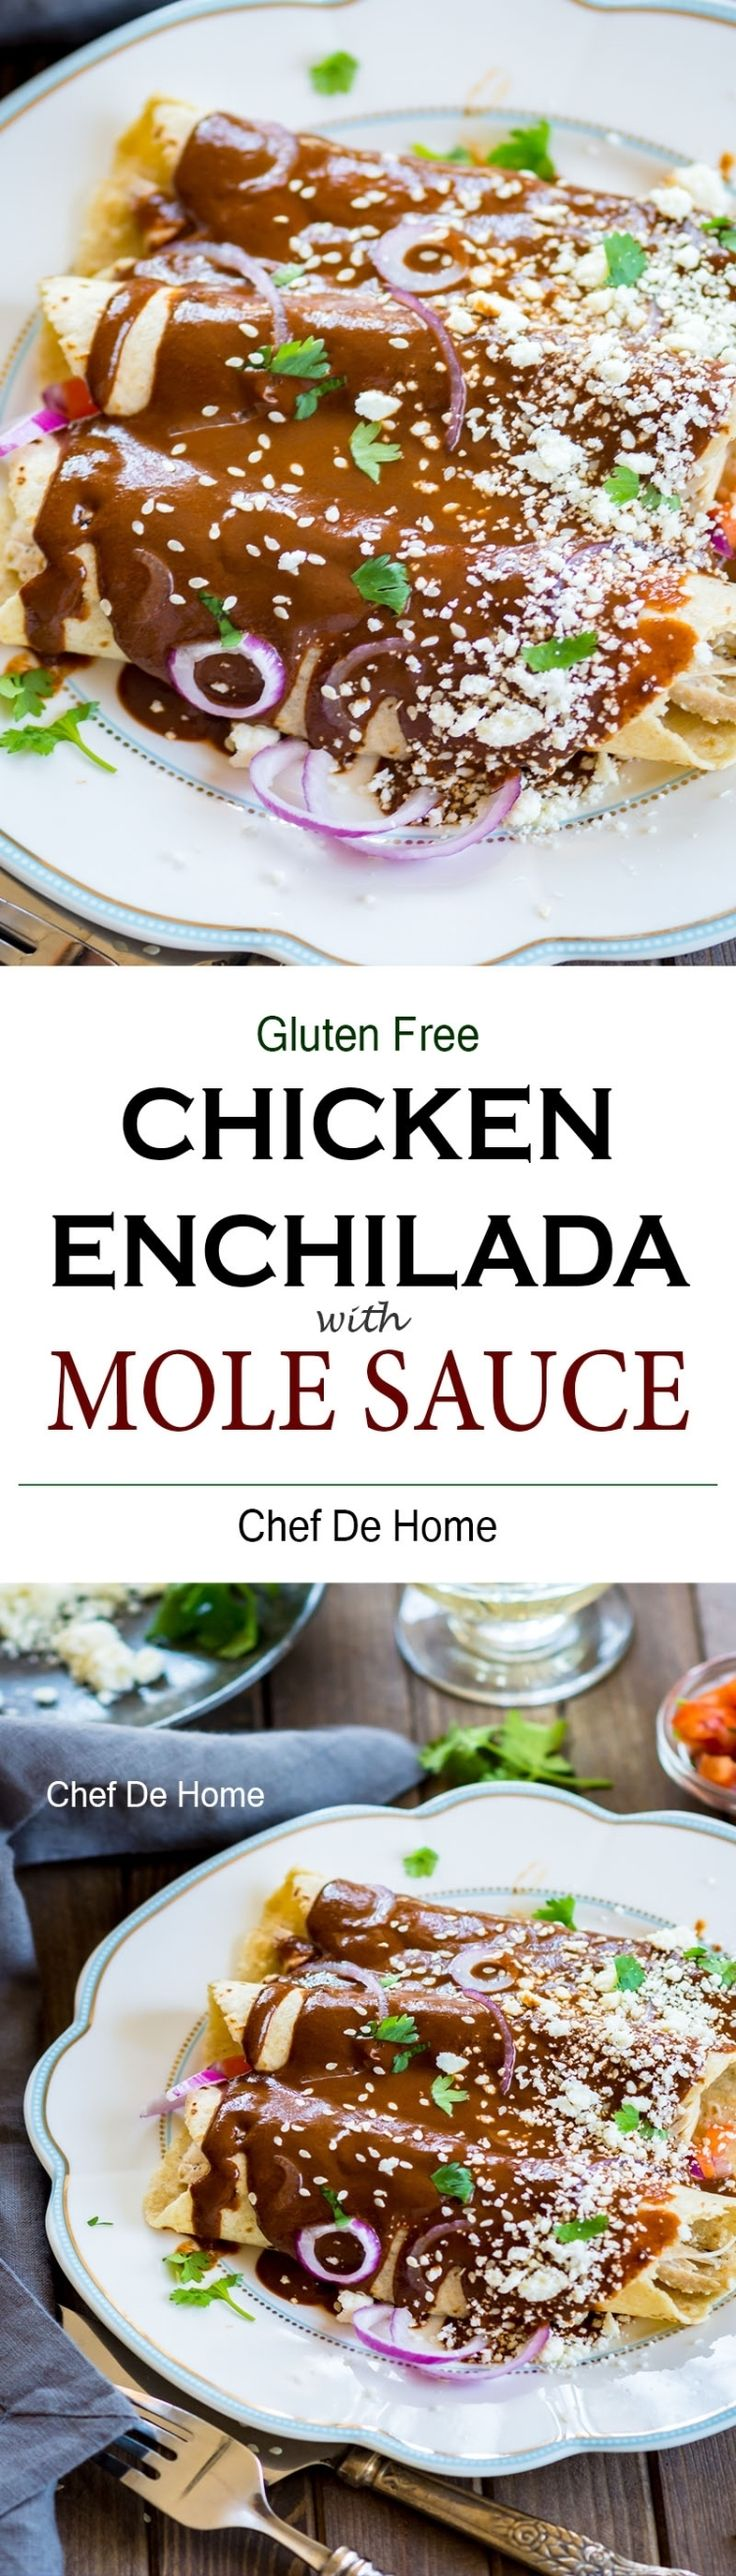 Mole Chicken Enchilada with Homemade Mole Sauce - Ready in just 30 minutes and has authentic mole poblano taste. Easy and affordable  chicken dinner at home.